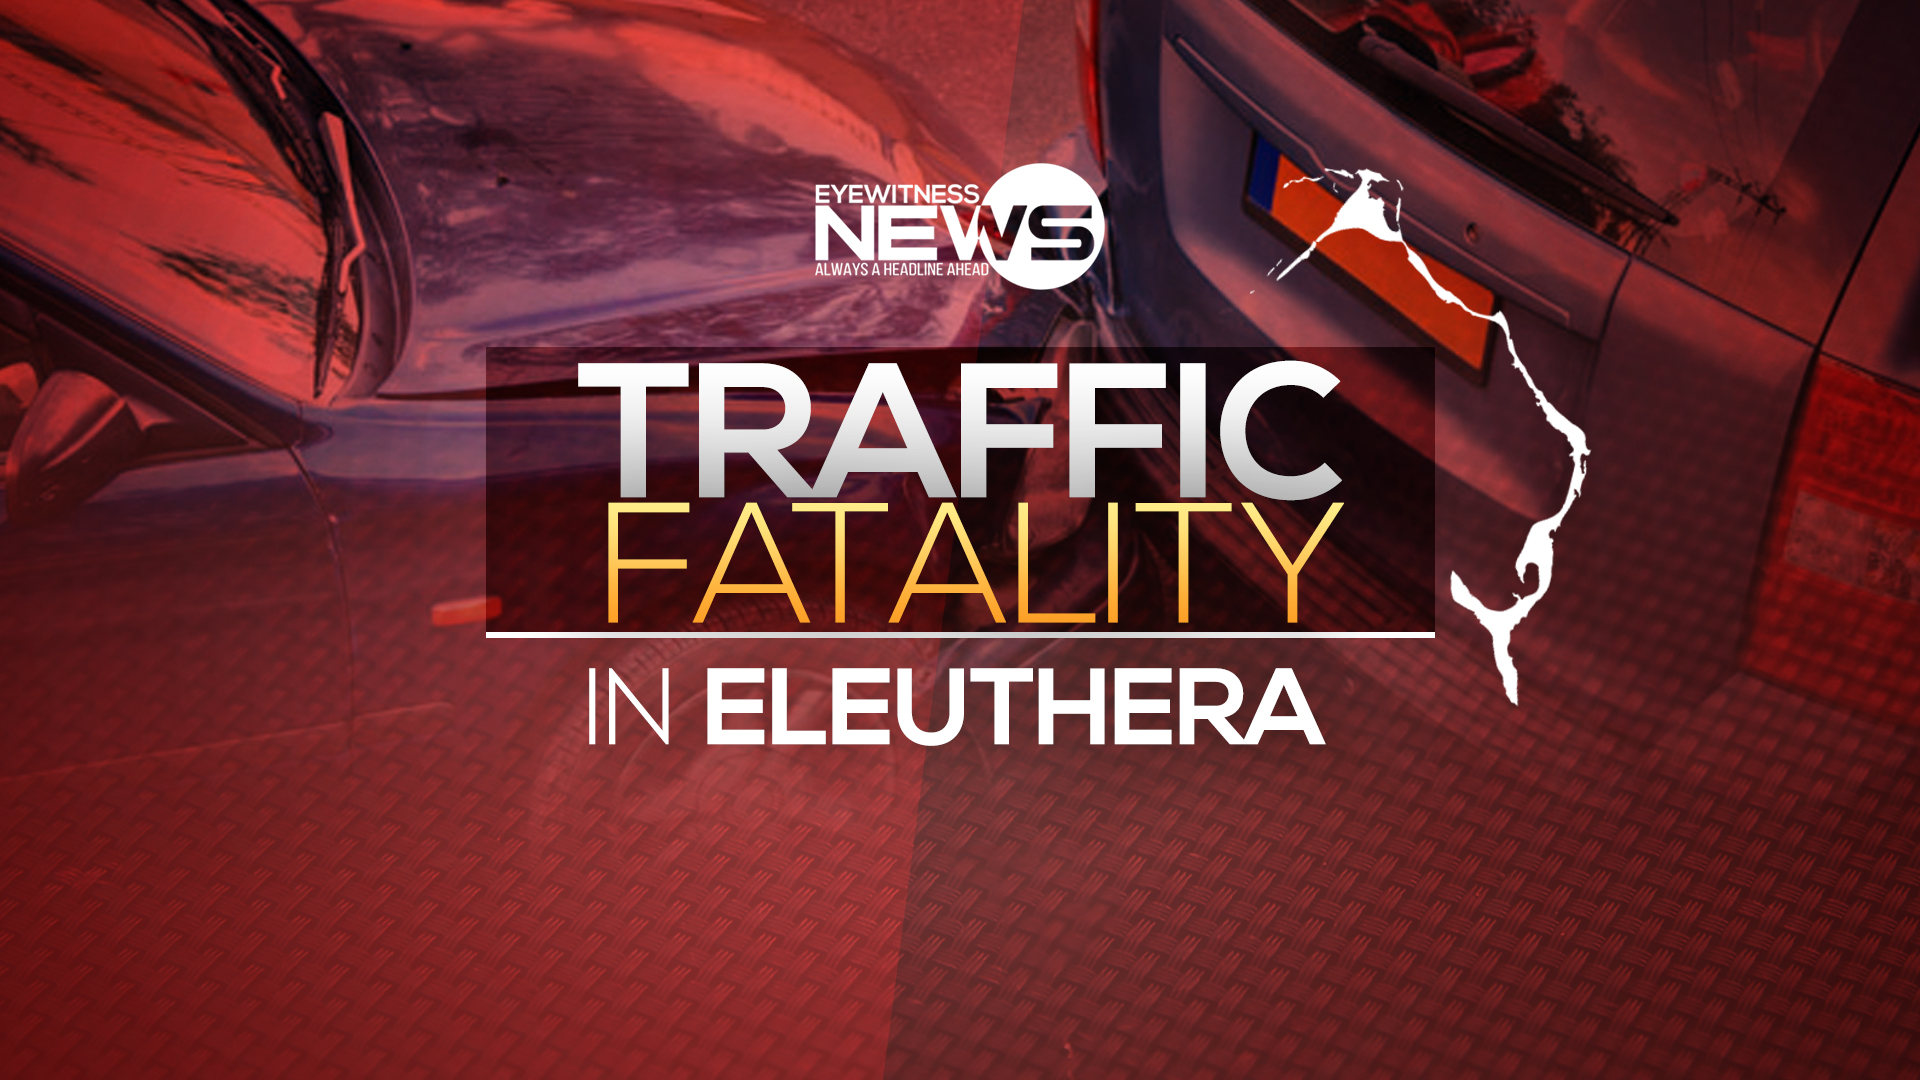 Police continues investigation of Eleuthera traffic fatality